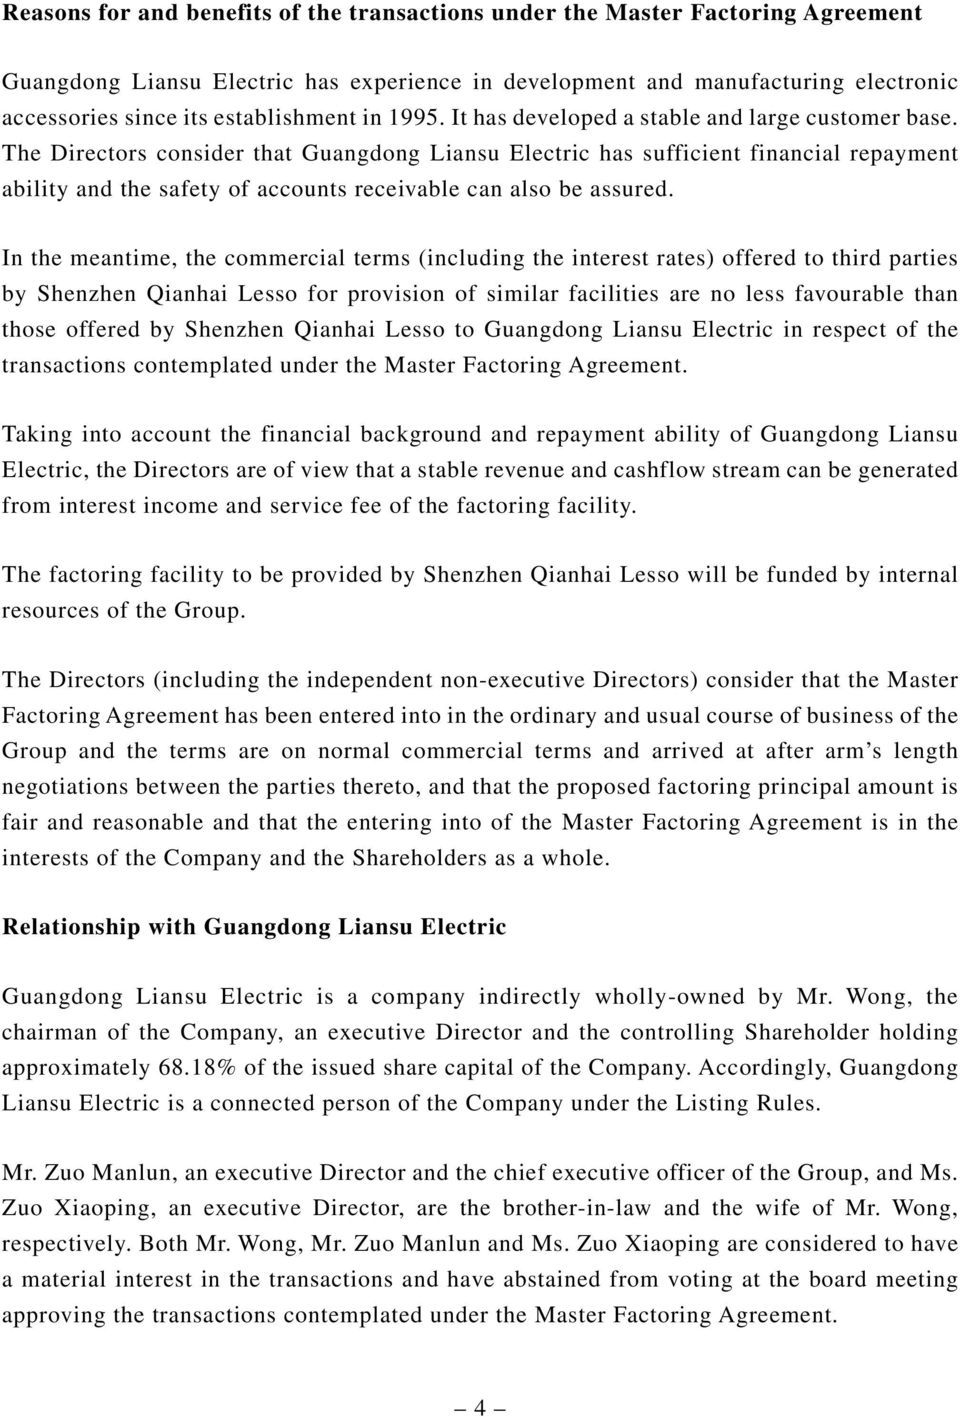 The Directors consider that Guangdong Liansu Electric has sufficient financial repayment ability and the safety of accounts receivable can also be assured.